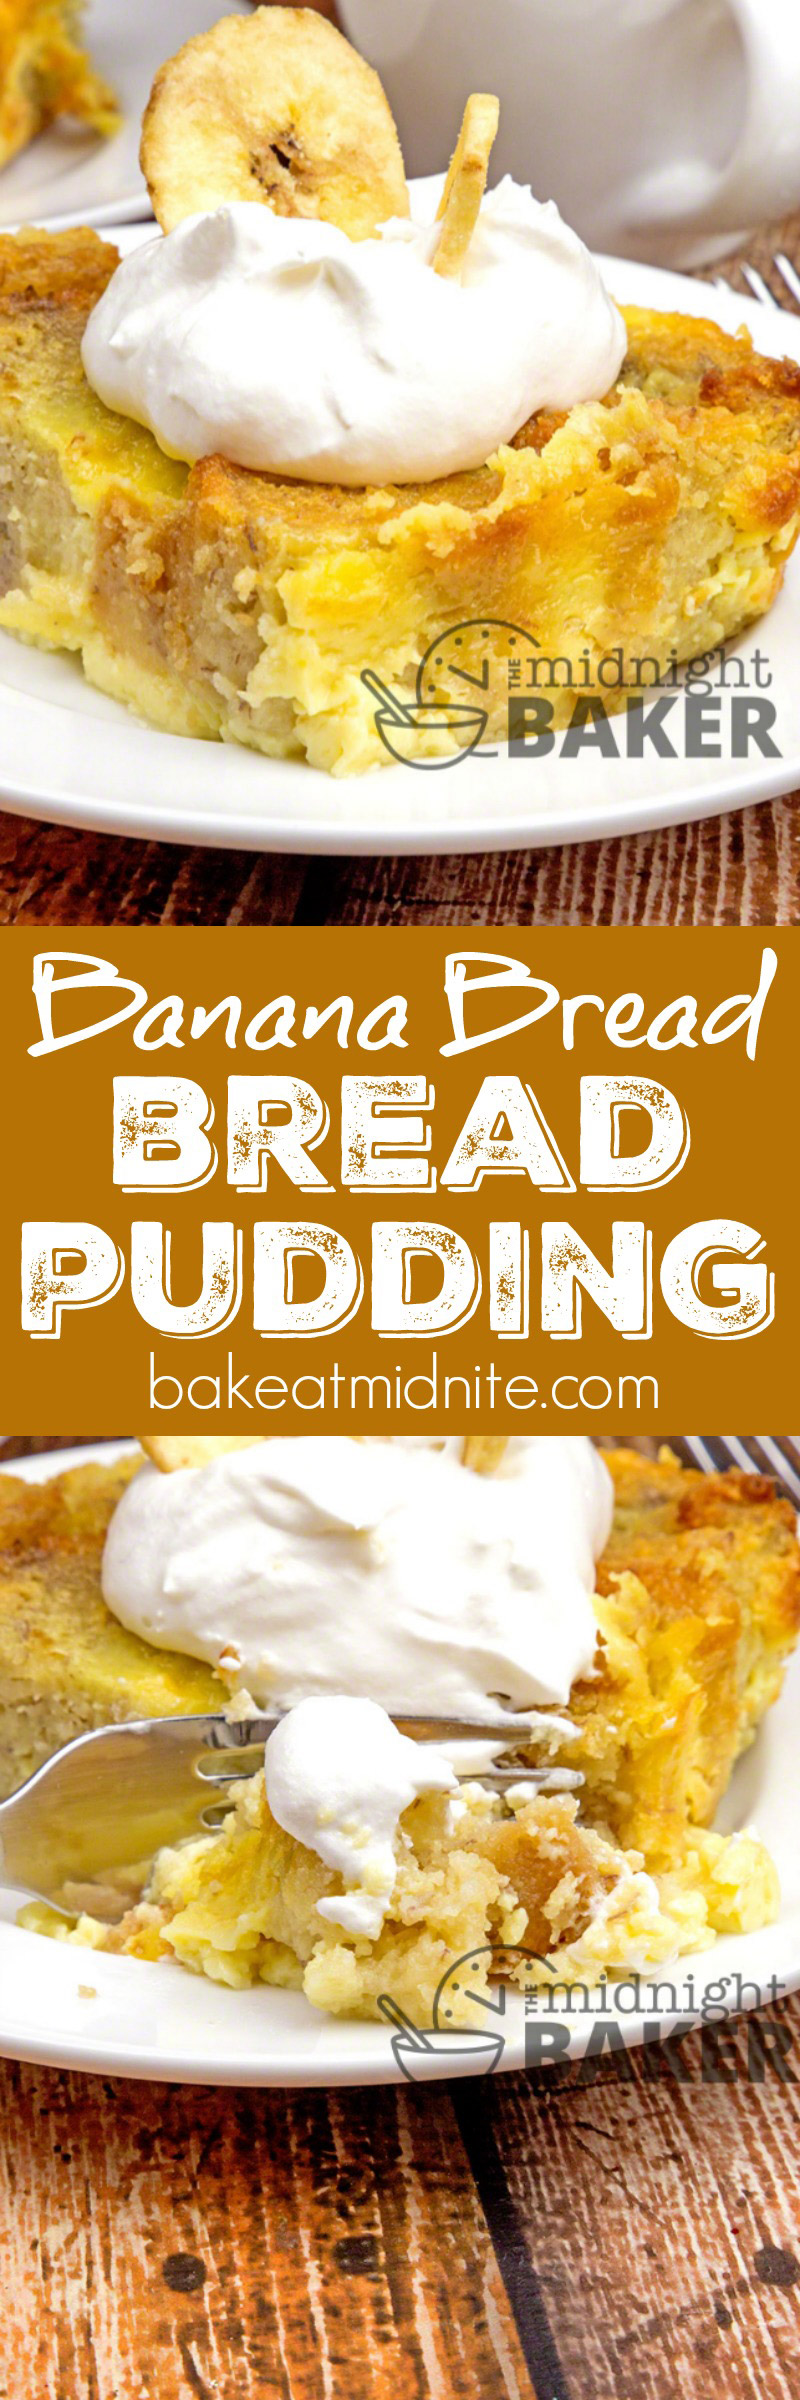 If you have any banana bread or cake left over, this is a wonderful dessert that will use up the leftovers